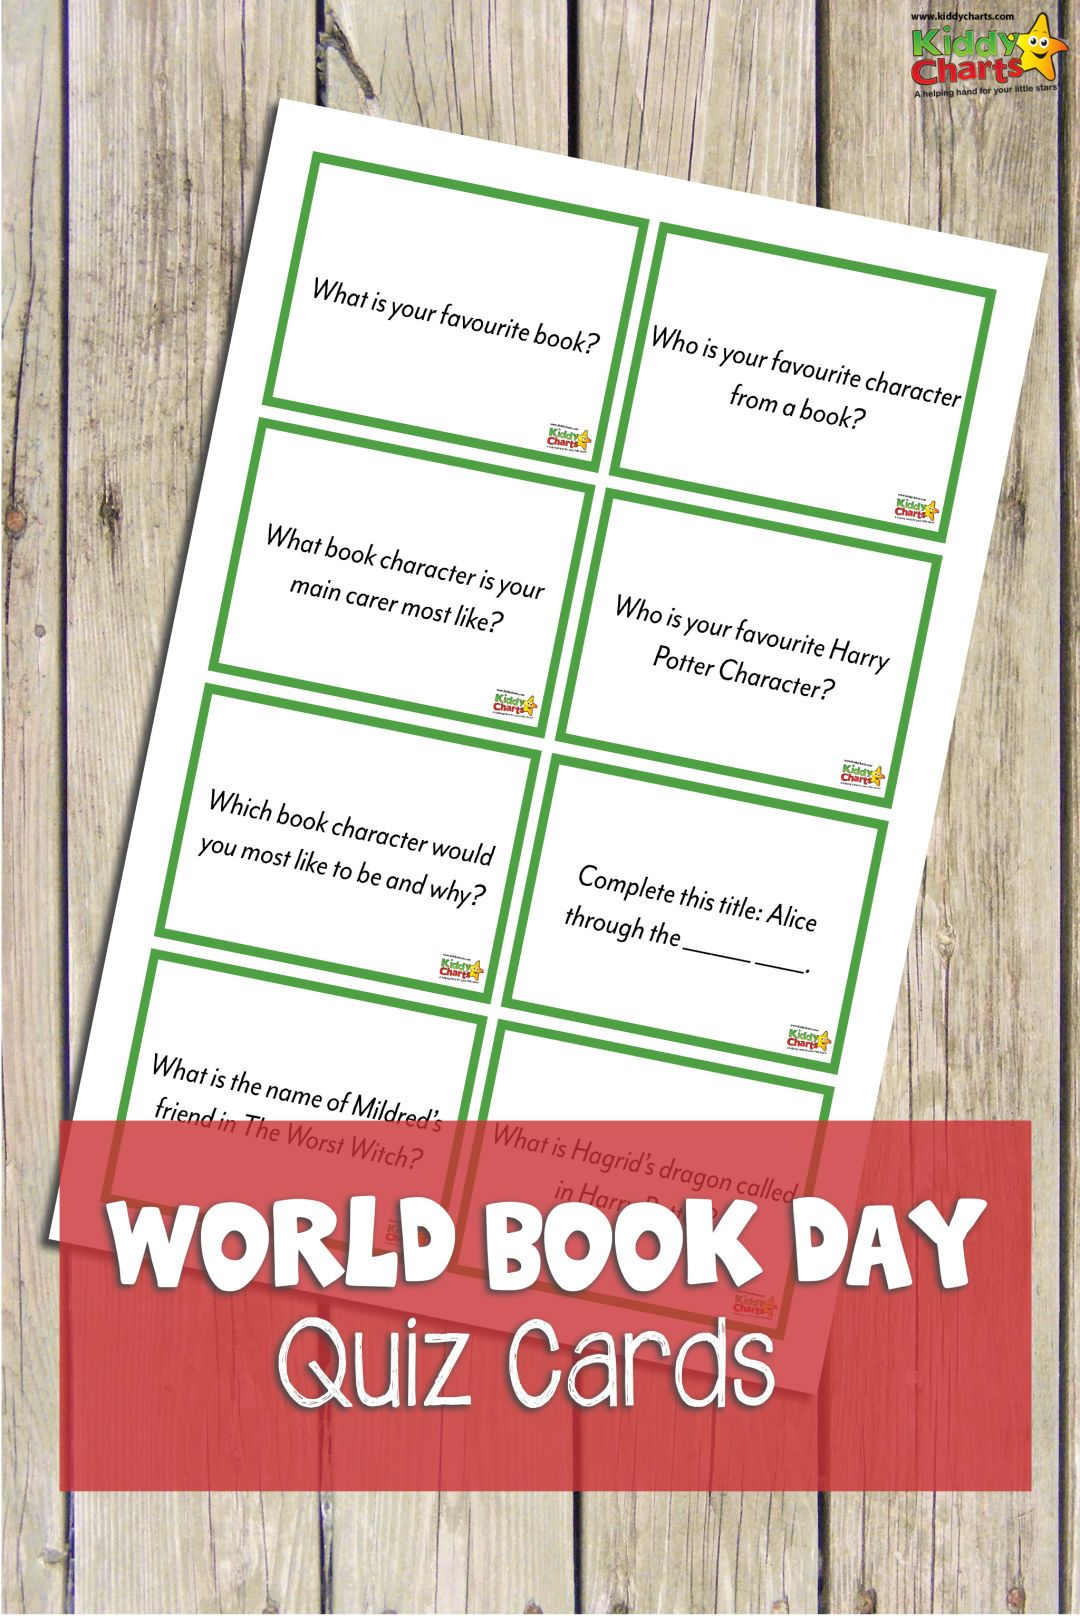 Eight World Book Day Quiz Cards